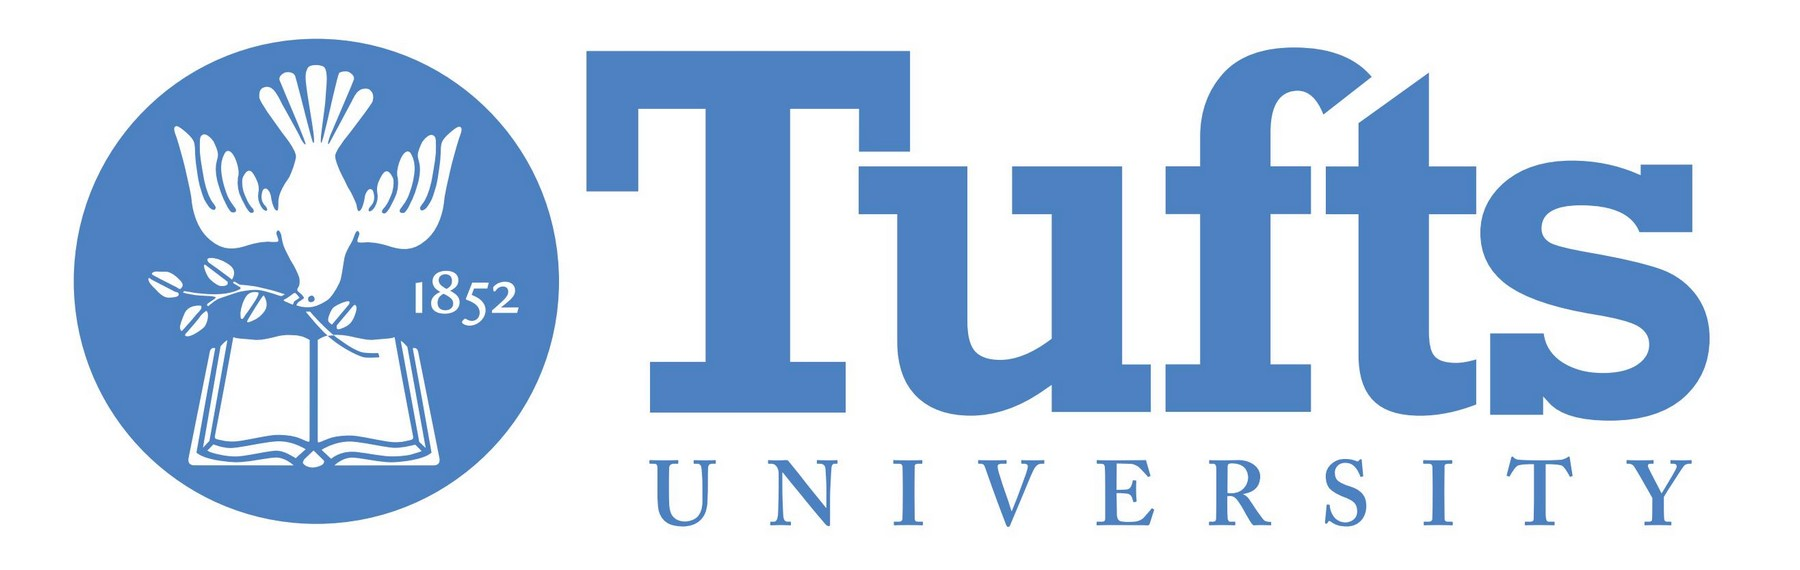 002 Tufts Supplemental Essays University Logo Essay Top Samples That Worked Full